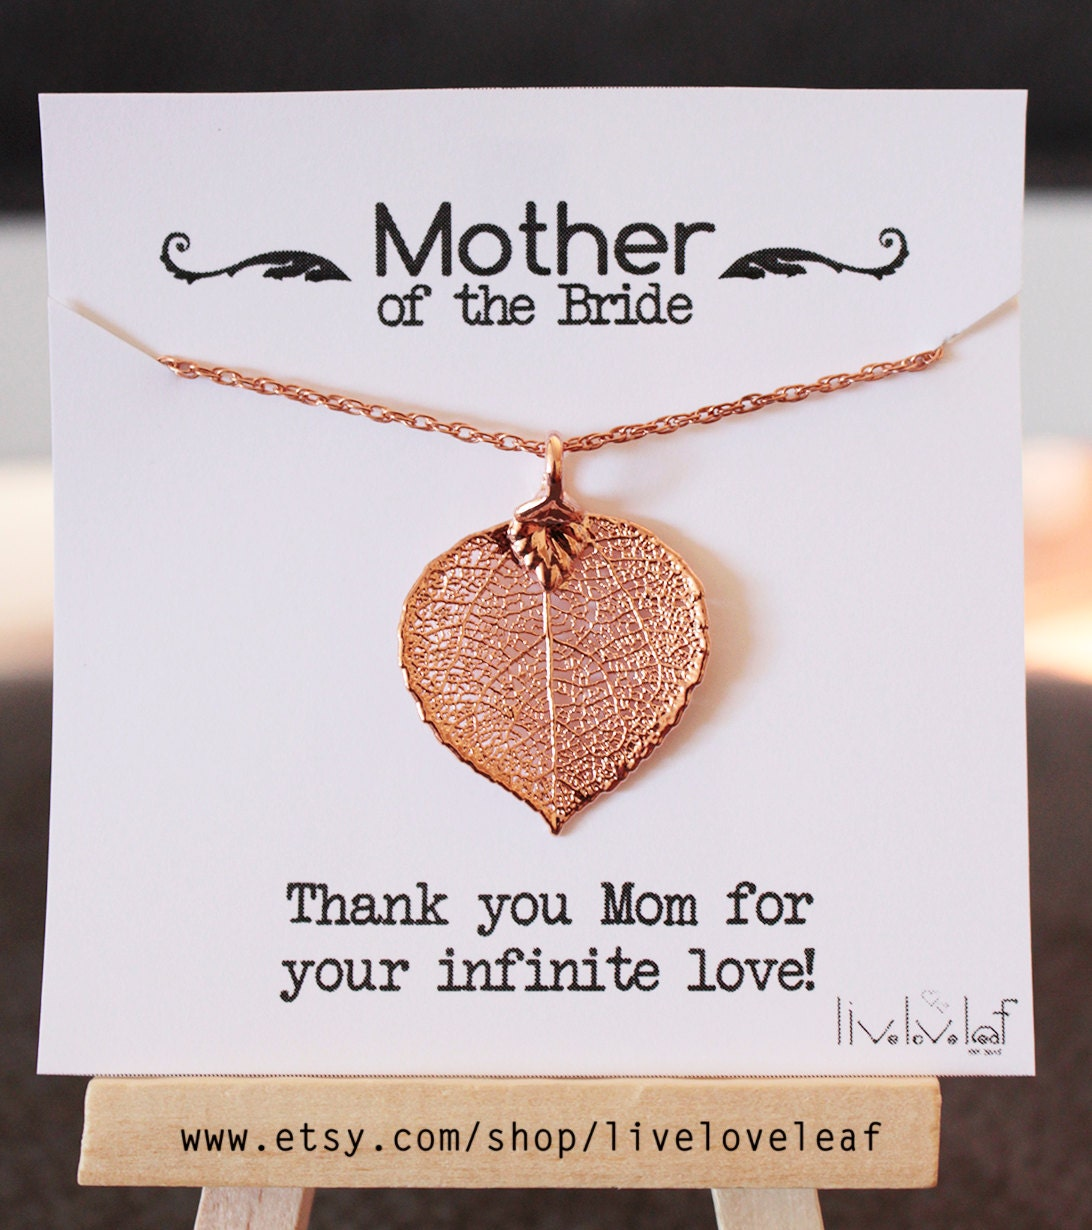 Wedding Gift Jewelry Suggestions : Wedding Jewelry Gift ideas Mother of the bride Mother of the